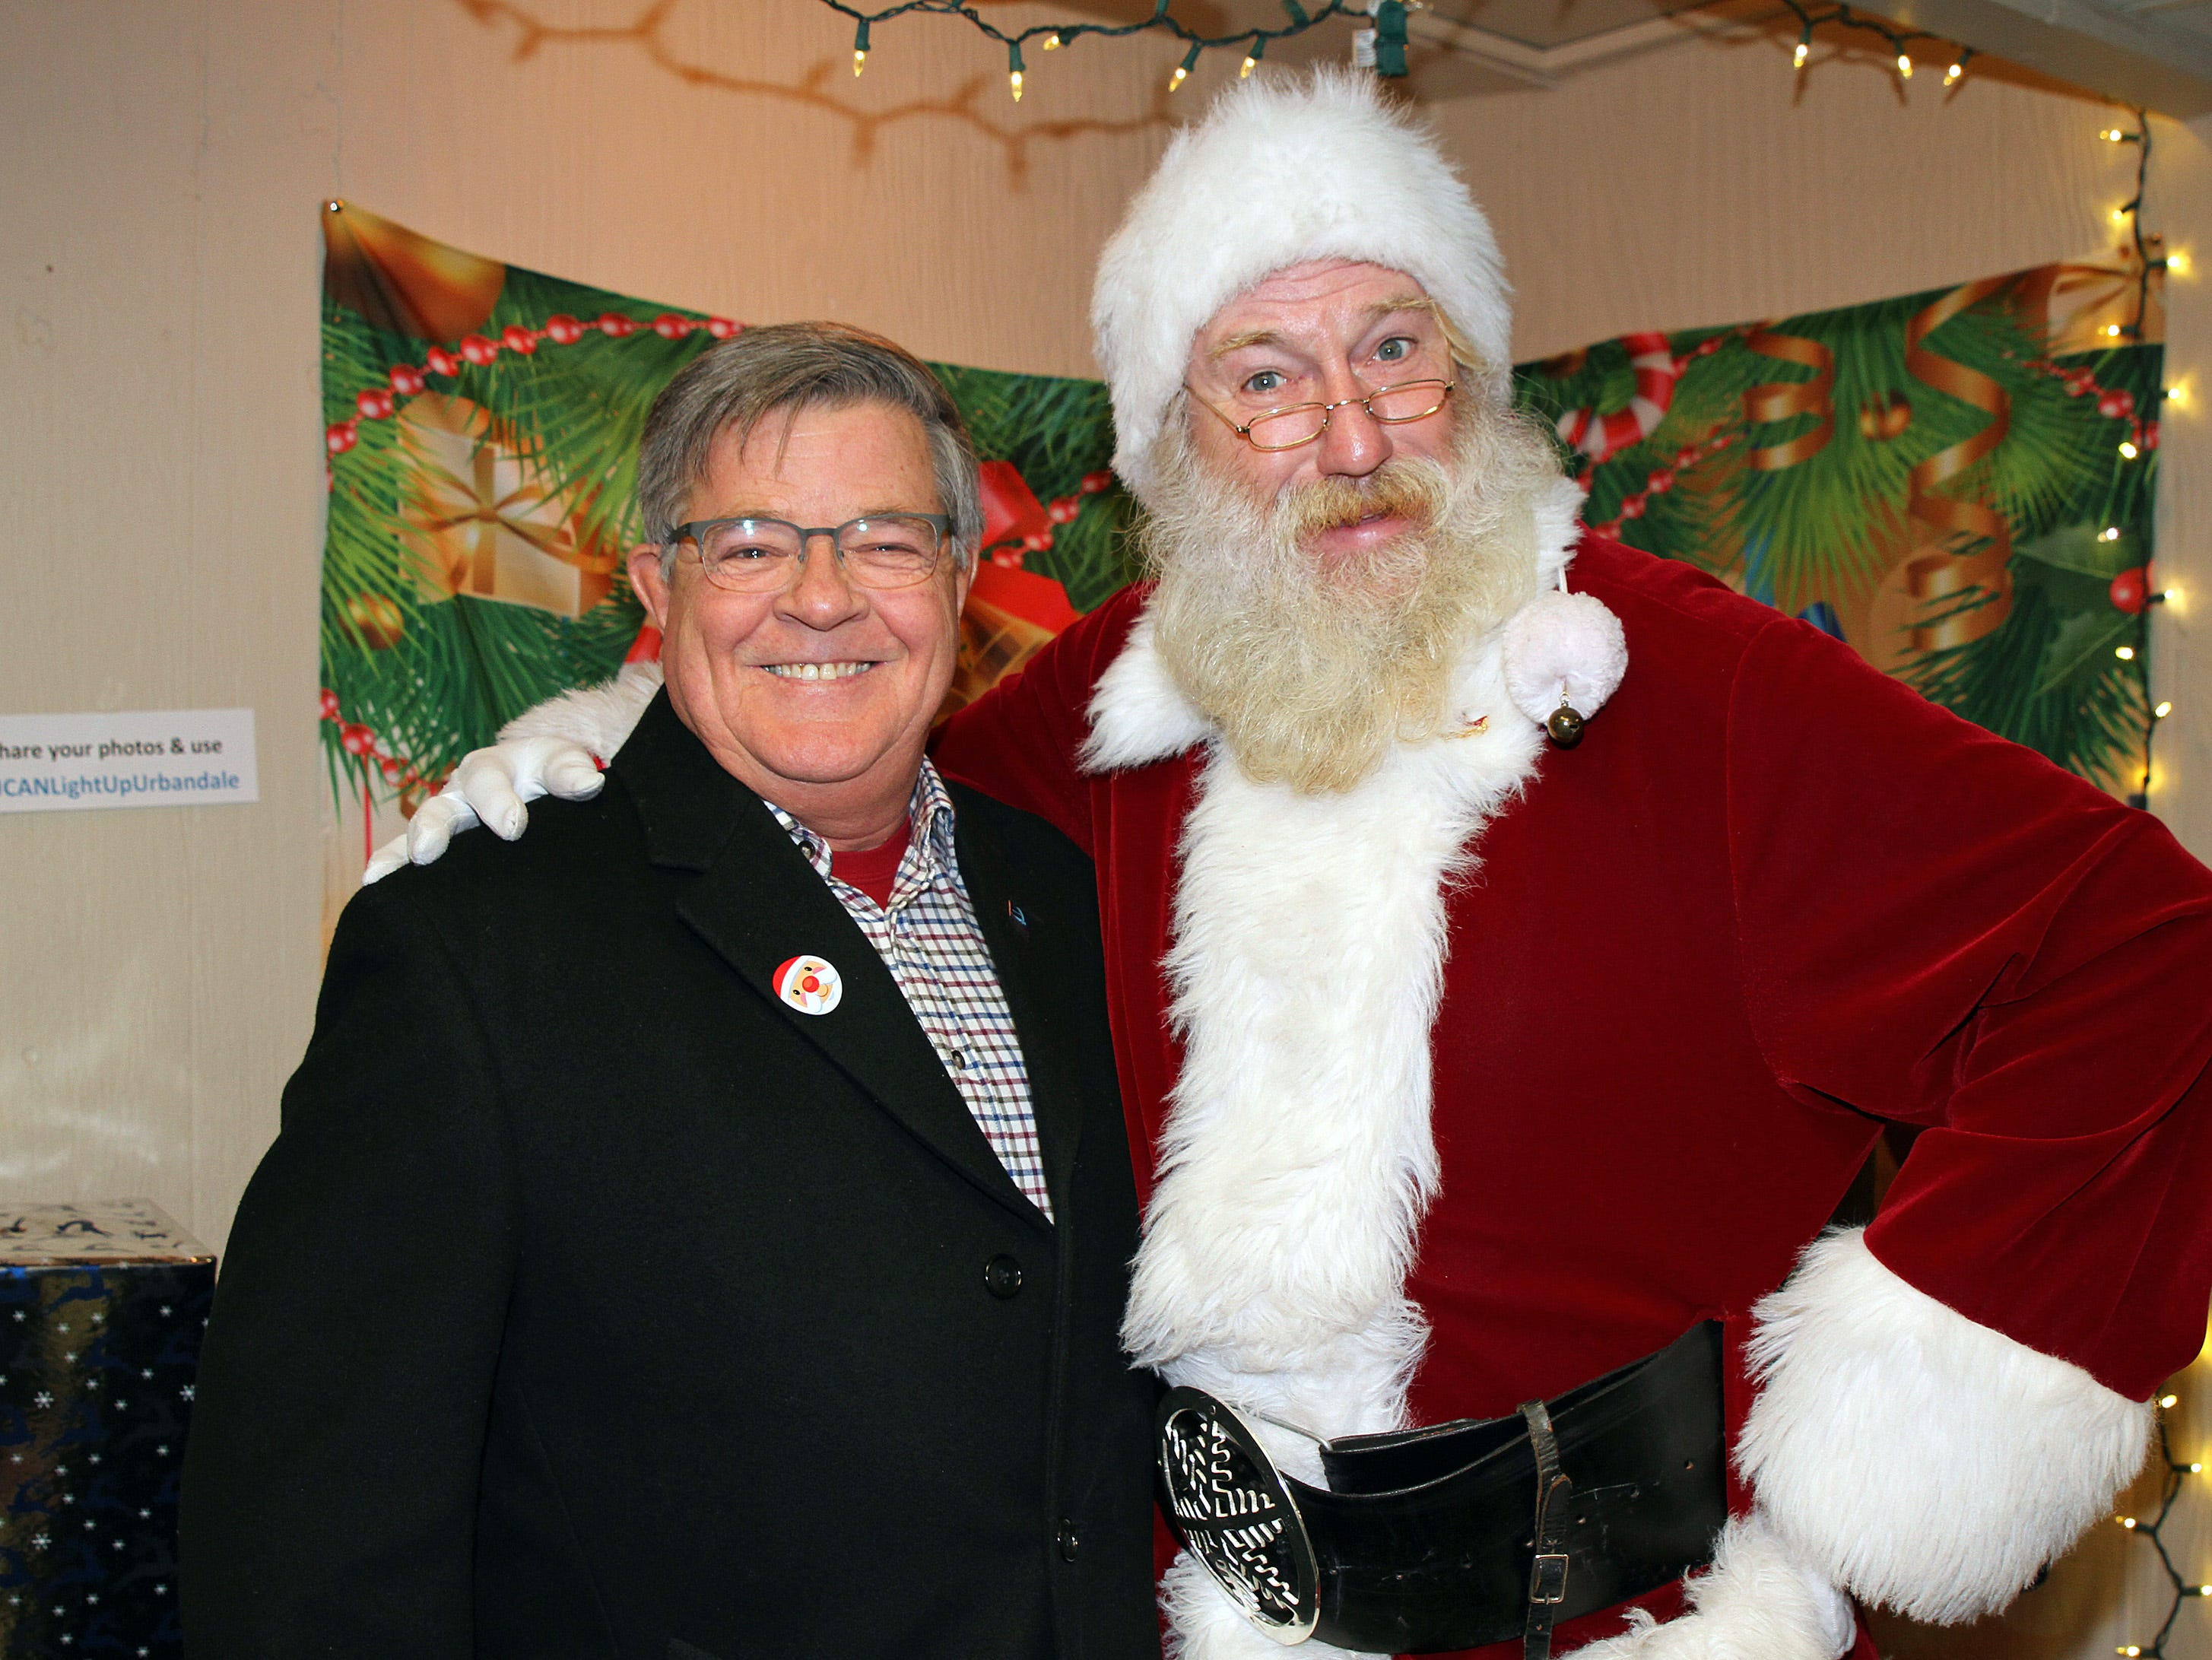 Urbandale City Council Member David Russell joins Santa during UCAN's third annual Light Up Urbandale on Sunday, Dec. 2, 2018 at Lions Park in Urbandale. Holiday festivities included a visit from Santa, crafts, goodies, official tree lighting ceremony, live reindeer and entertainment.